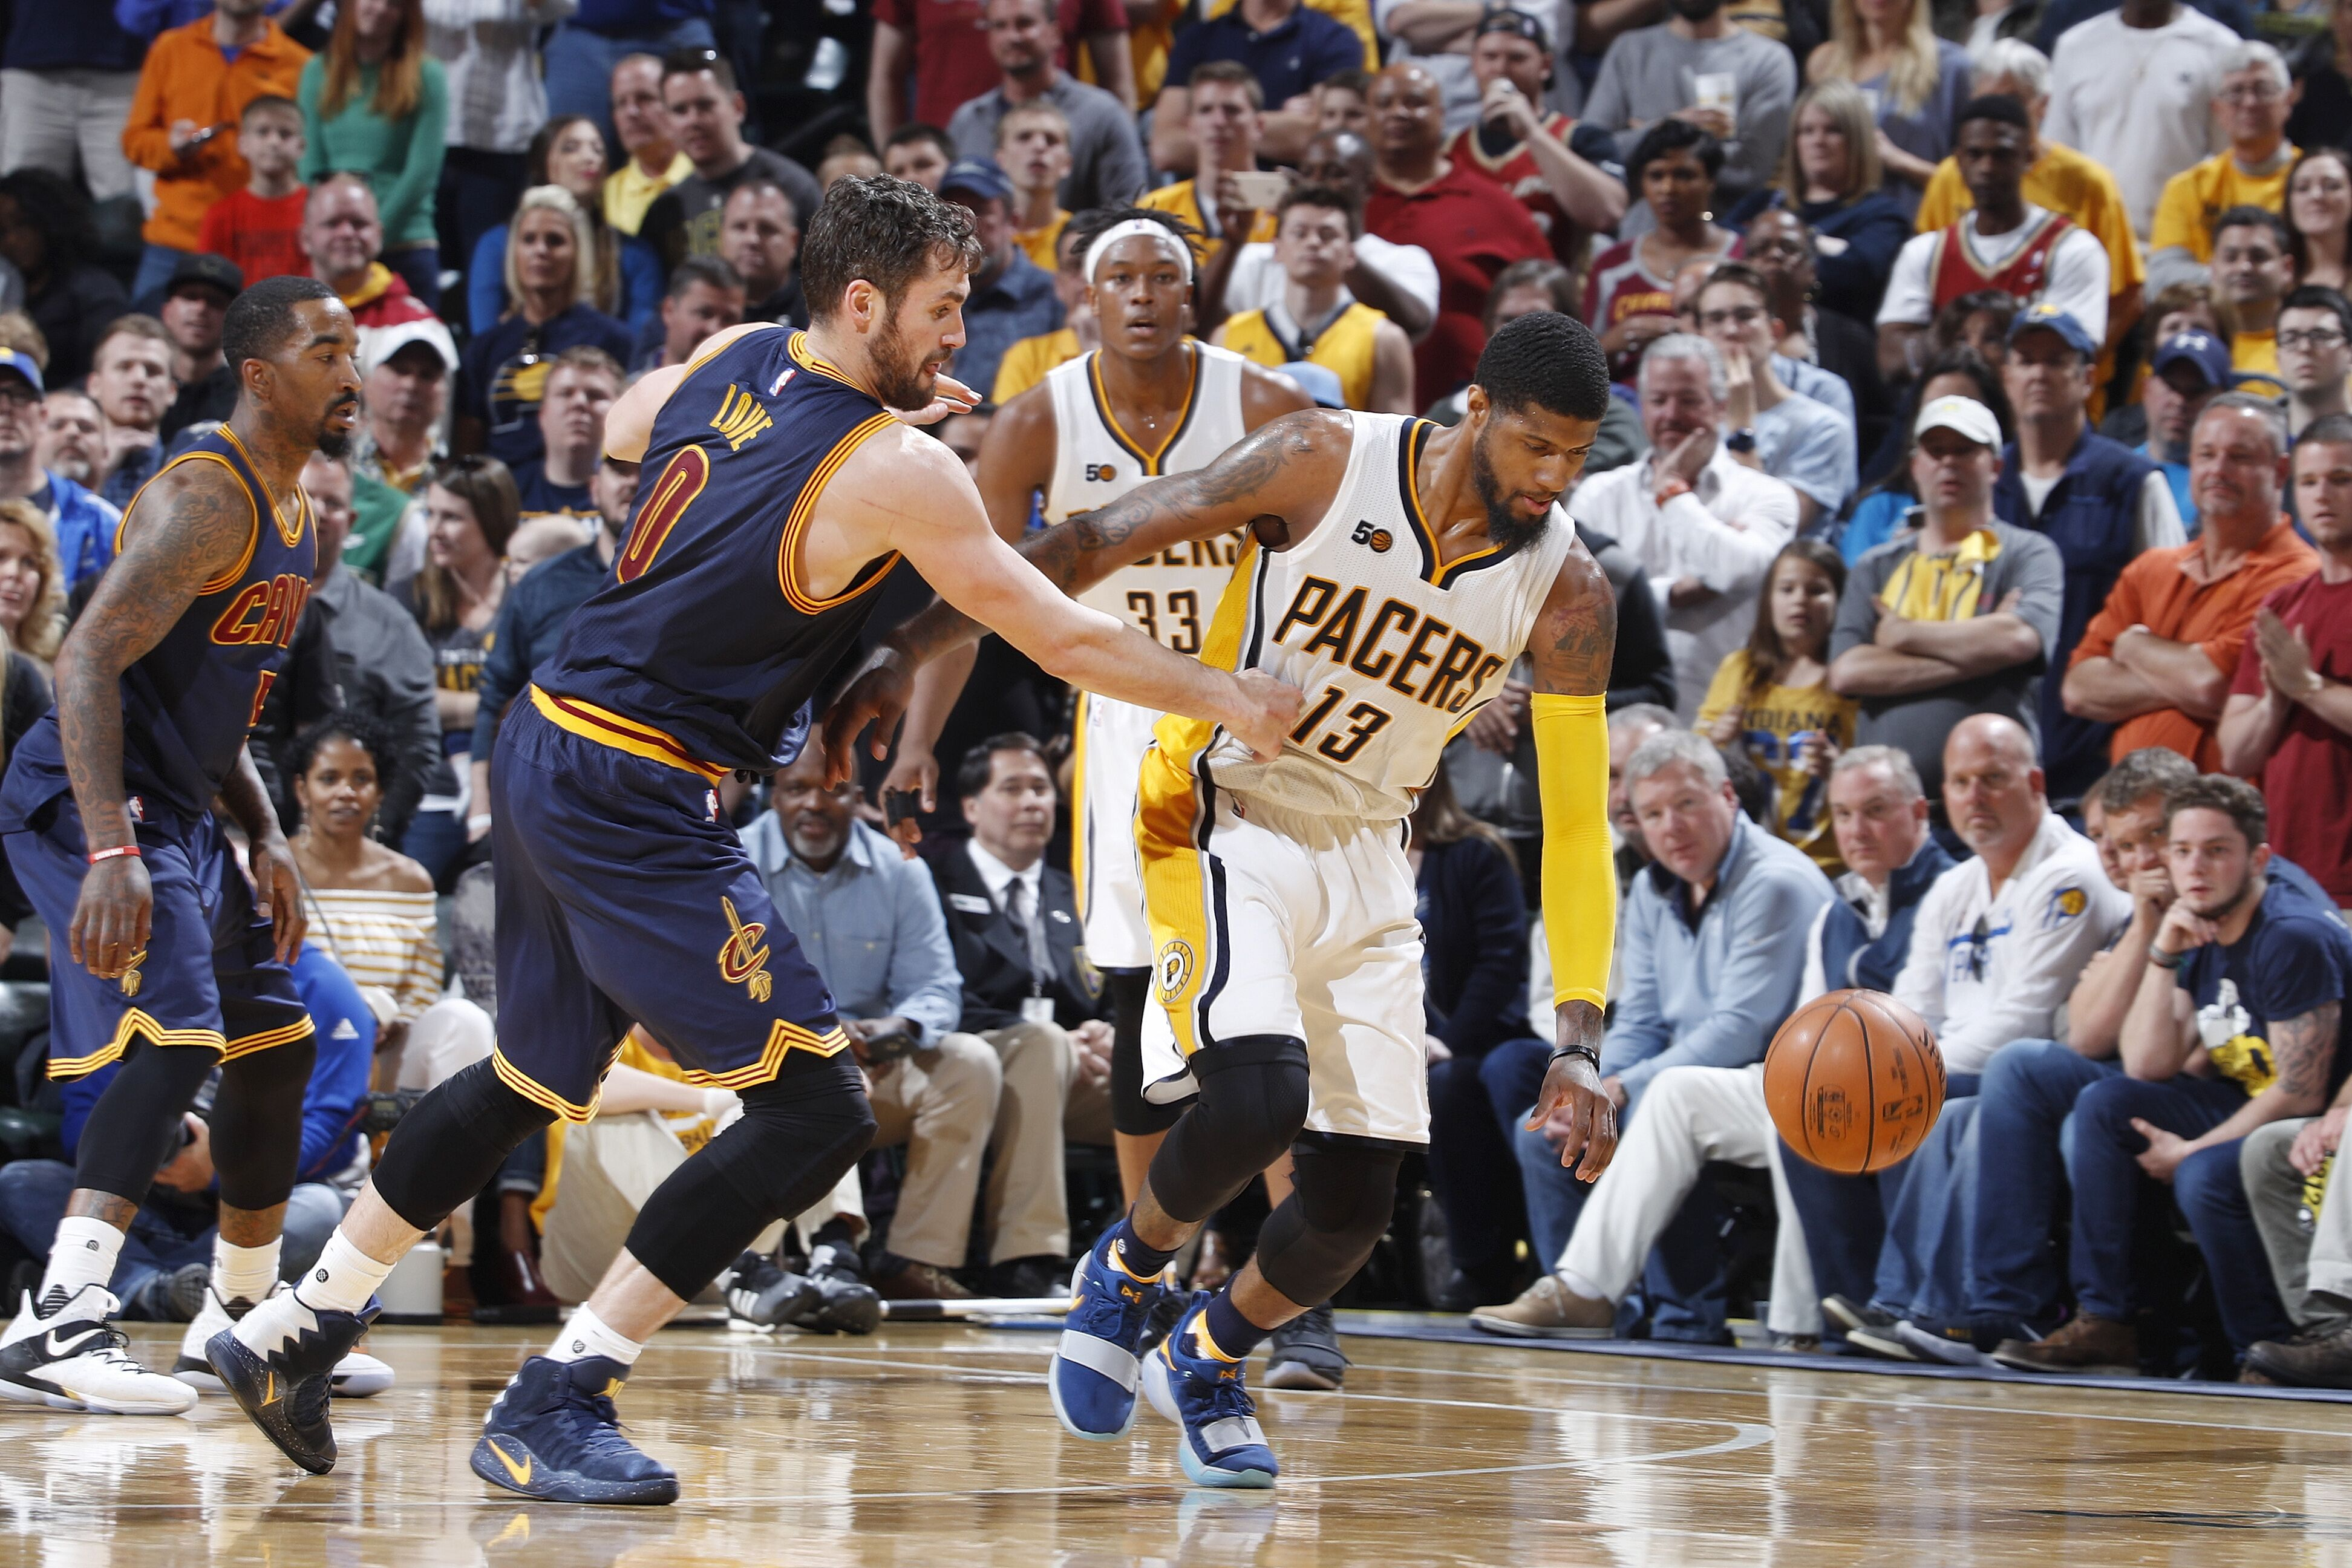 671979804-cleveland-cavaliers-v-indiana-pacers-game-four.jpg